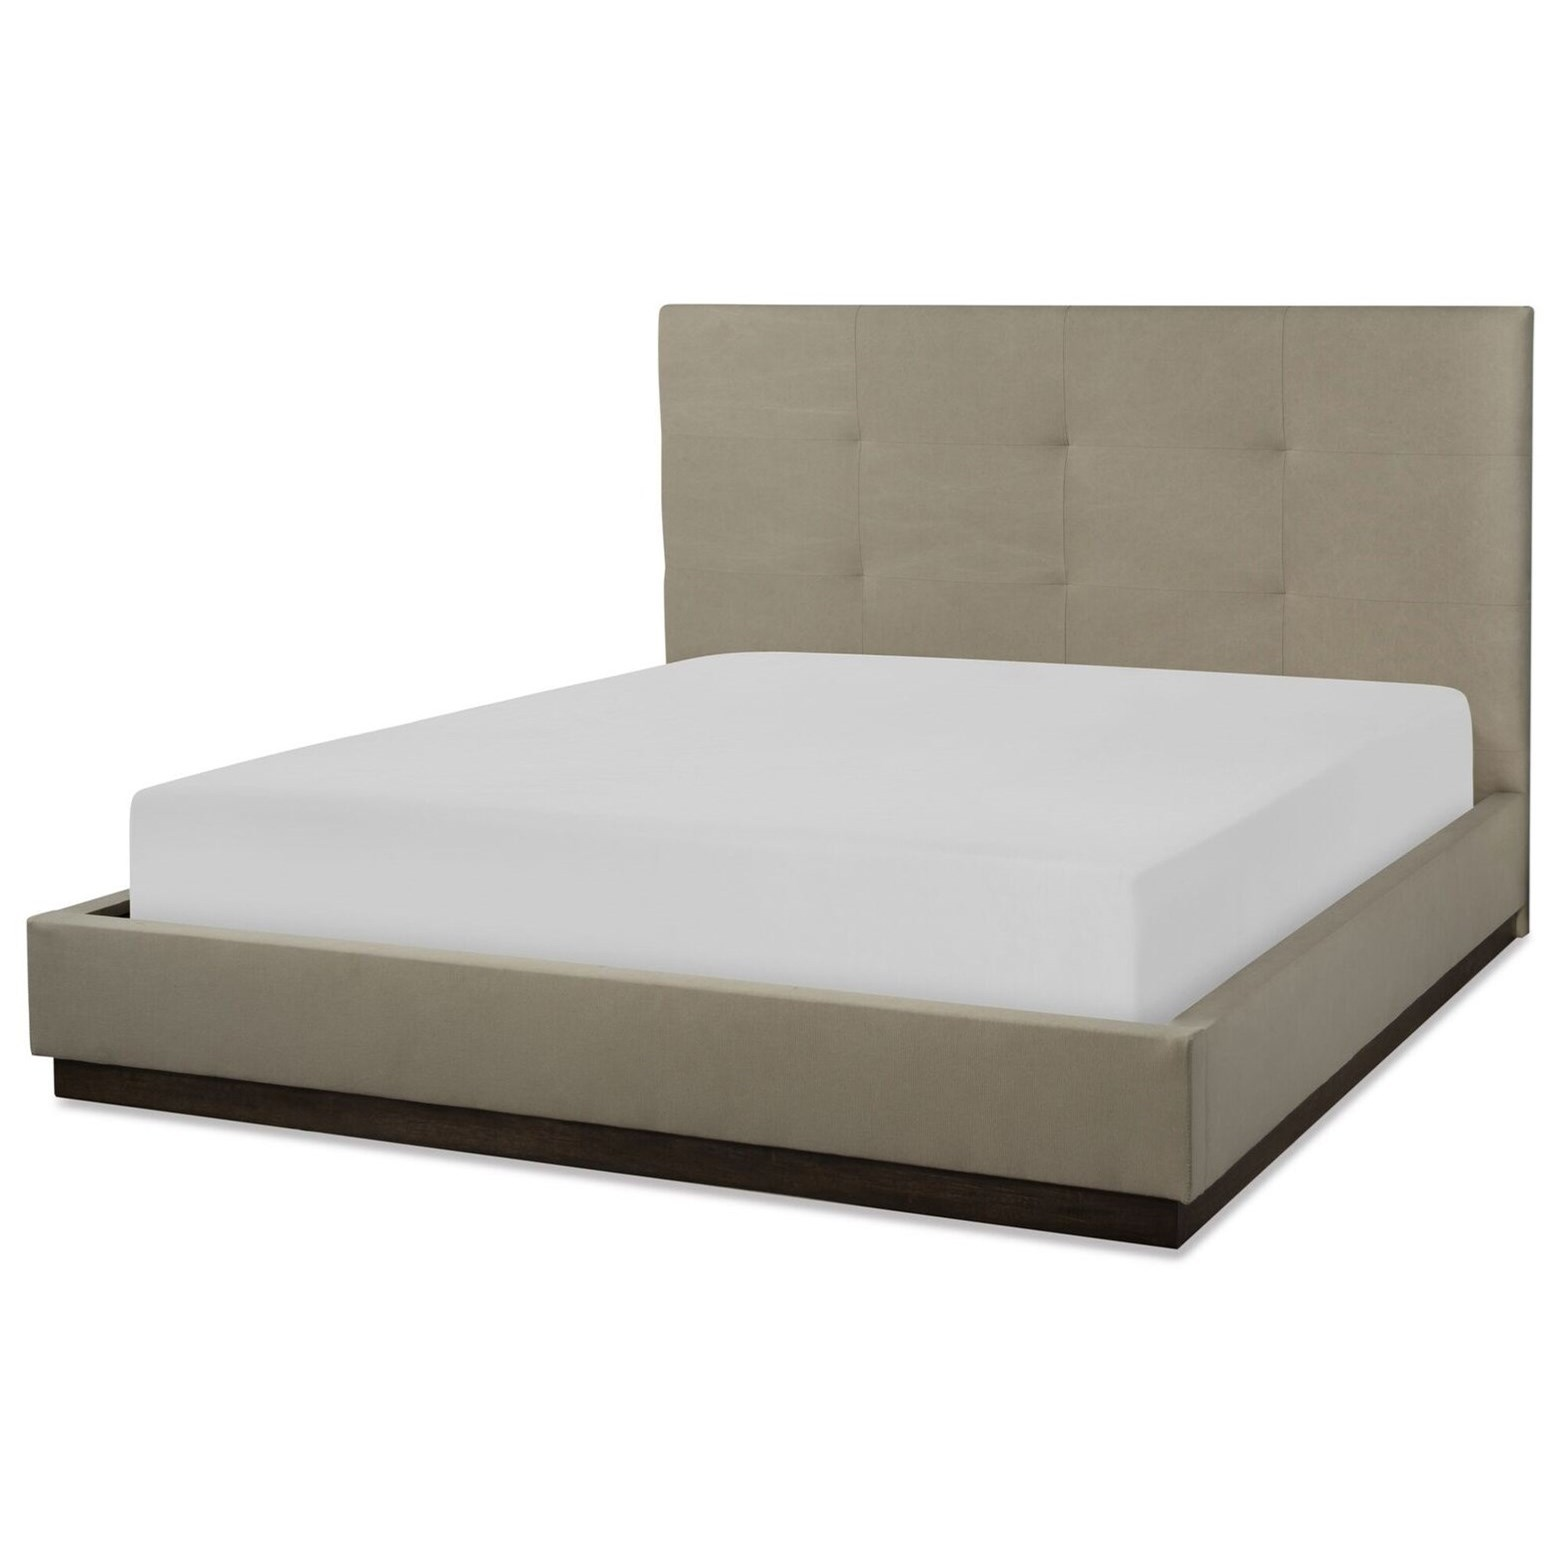 CA King Upholstered Wall Bed